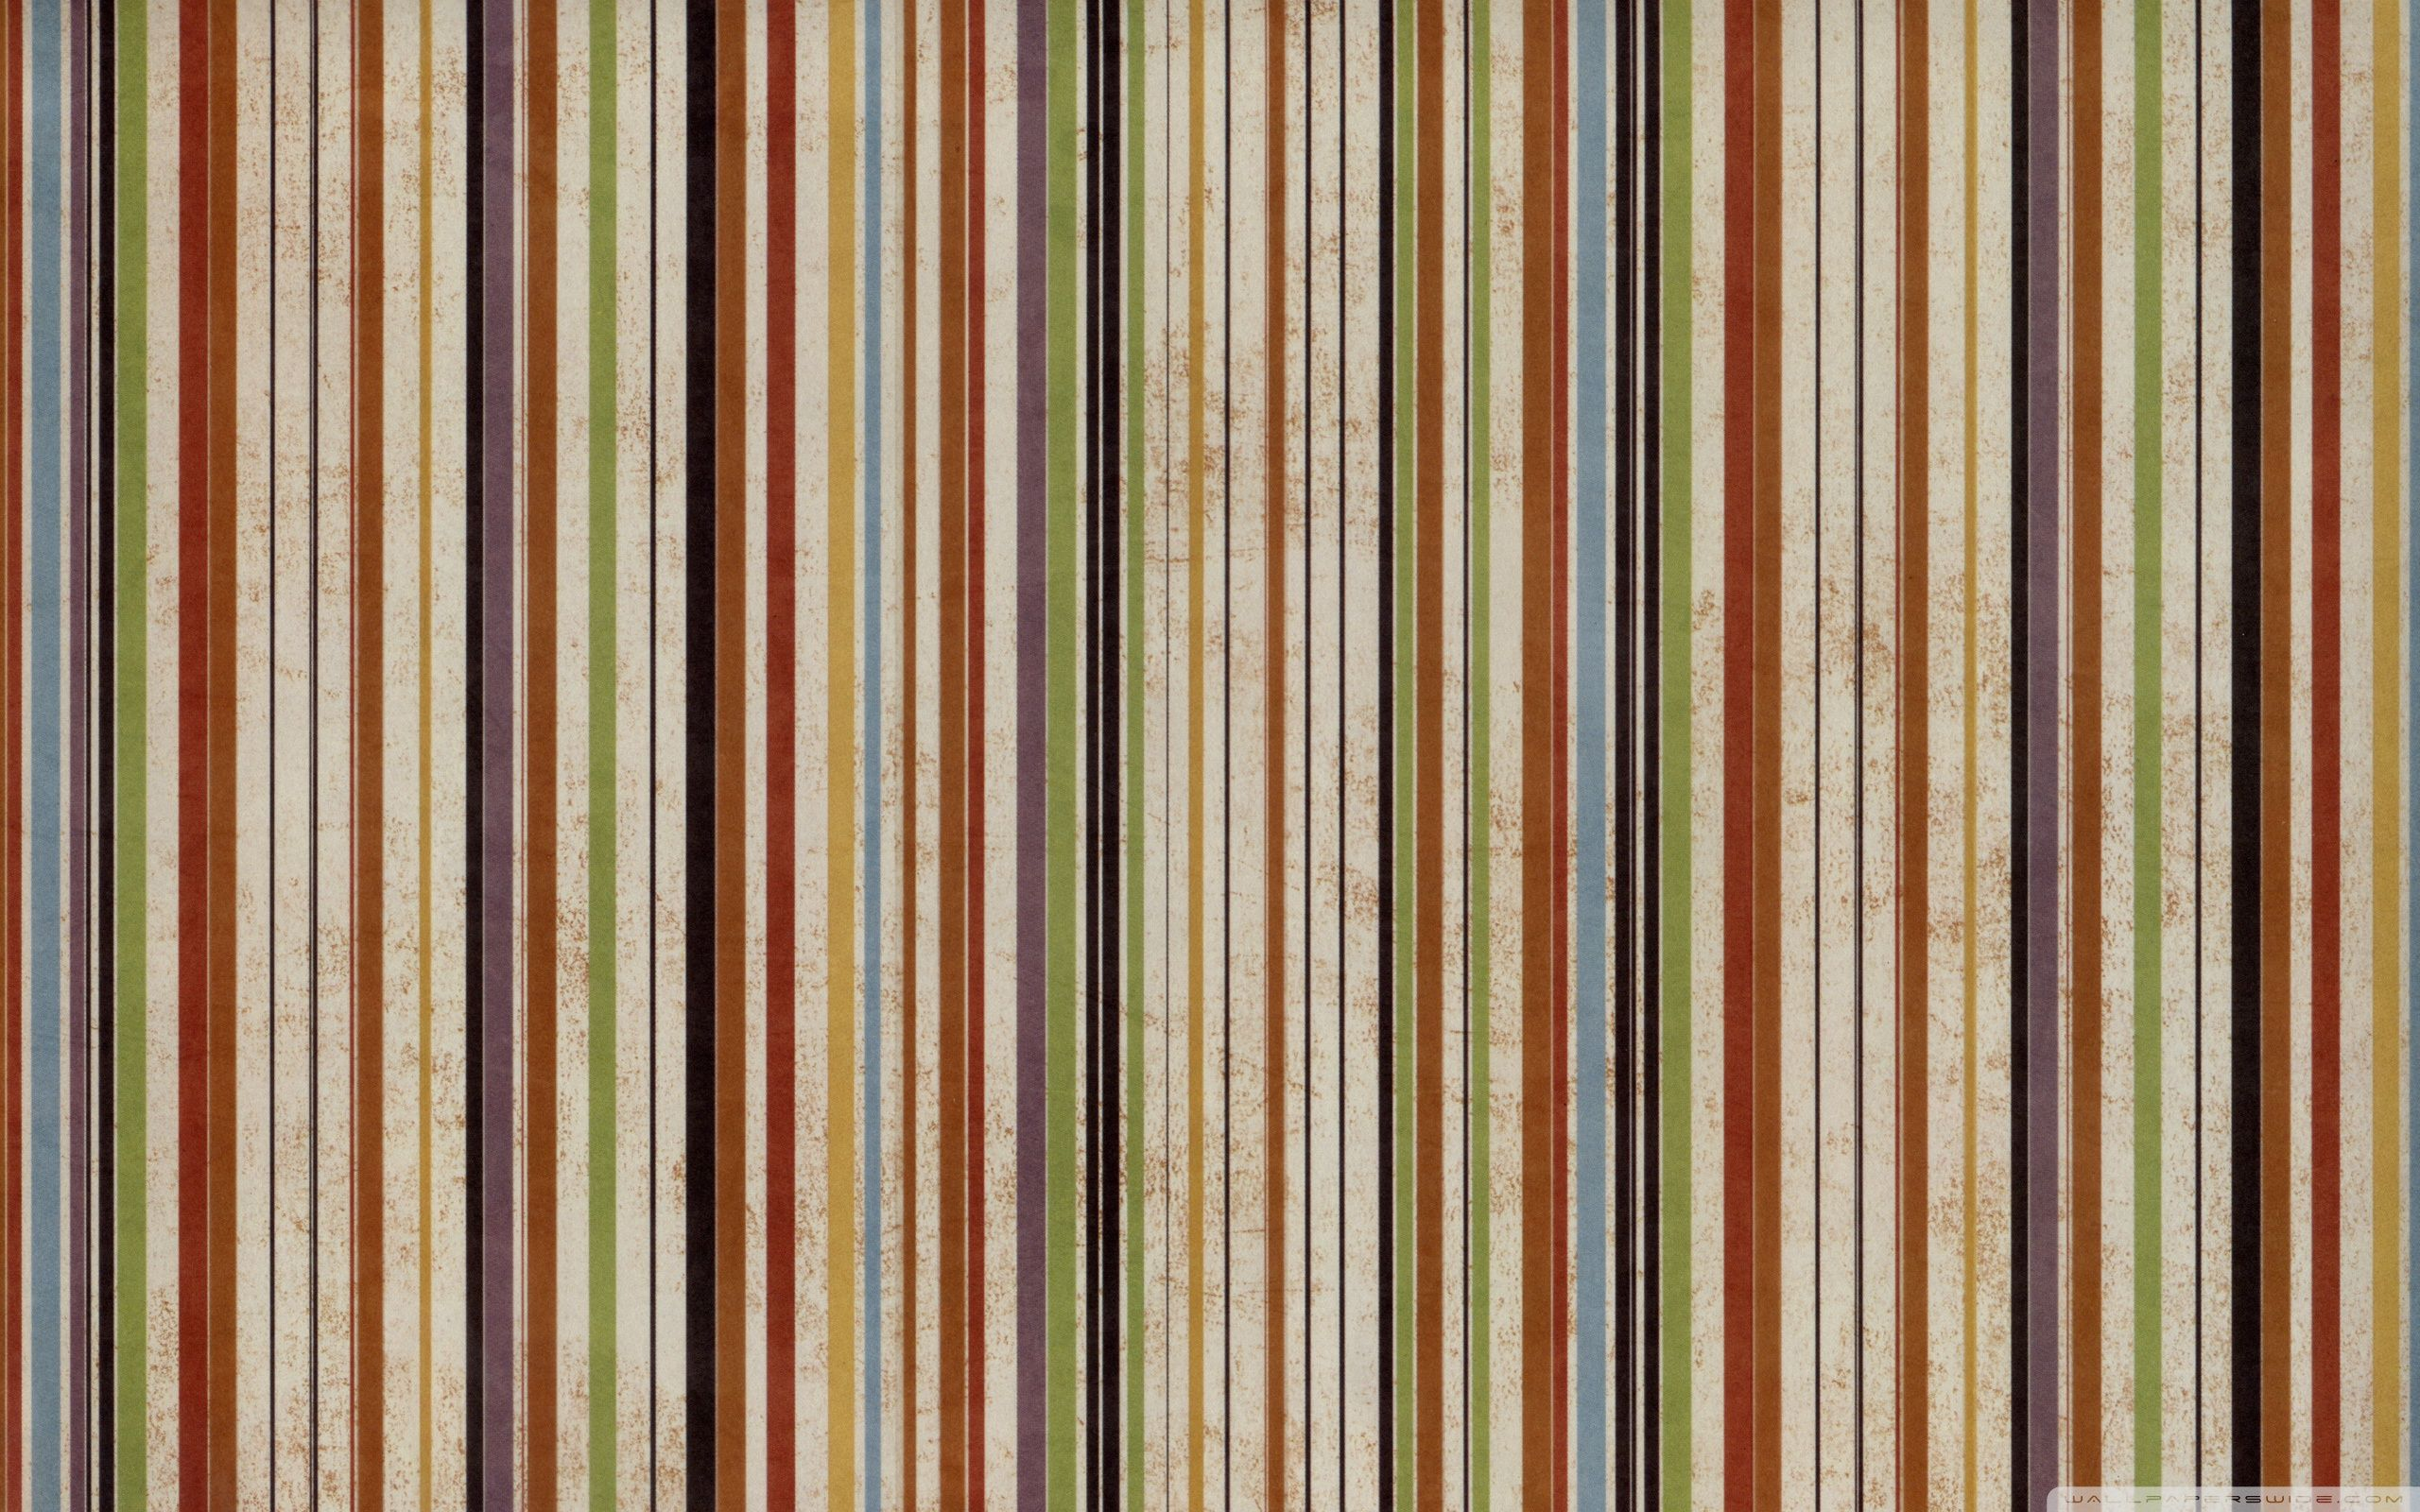 wallpaper blue colors stripes blackout patterns and textures pinterest color stripes